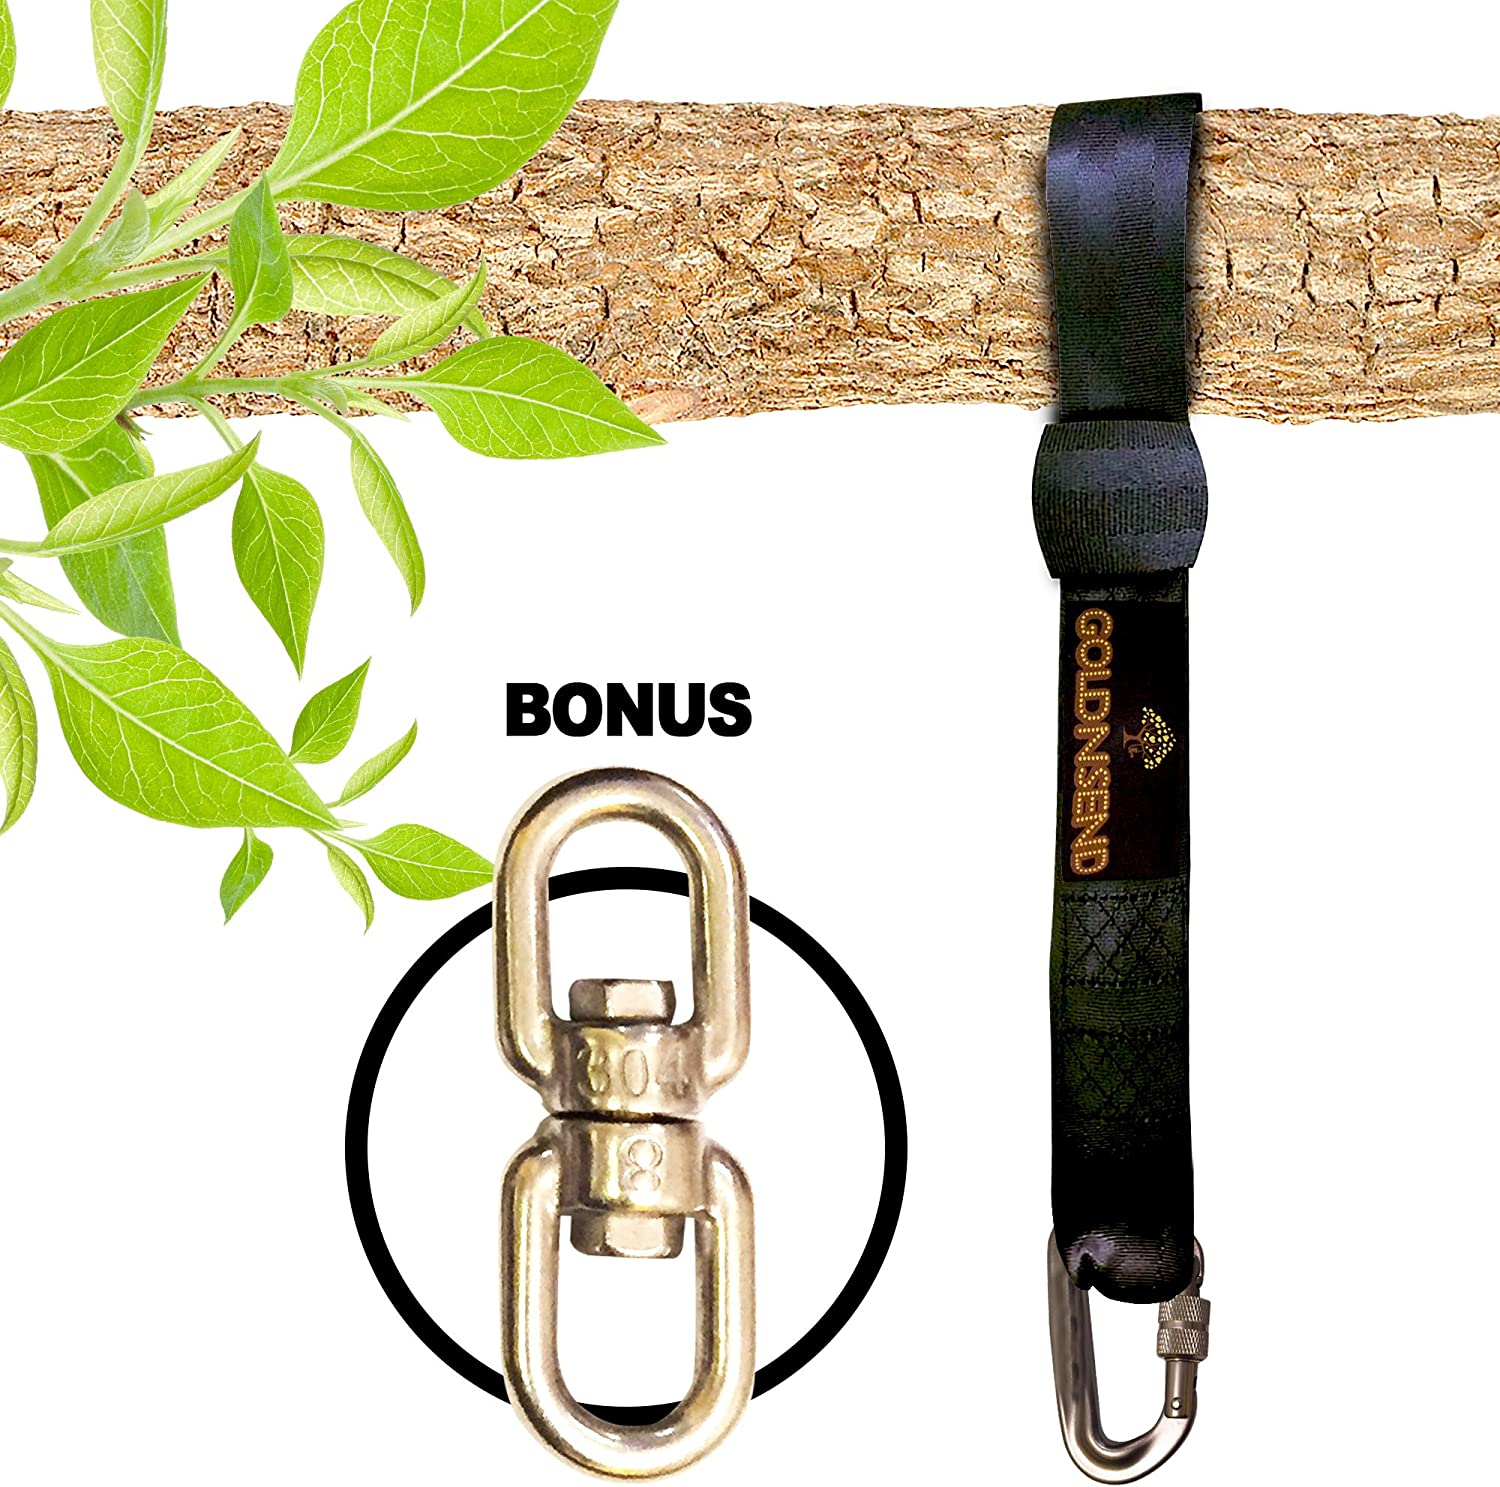 10 Ft Tree Swing Straps Hanging Kit for Outdoor Swing with Free Swivel Hook - New Extra Long10 Ft Strap Holds 2800 Lbs, Fast & Easy Way to Hang Any Swing Set 91jhu9jOUwL